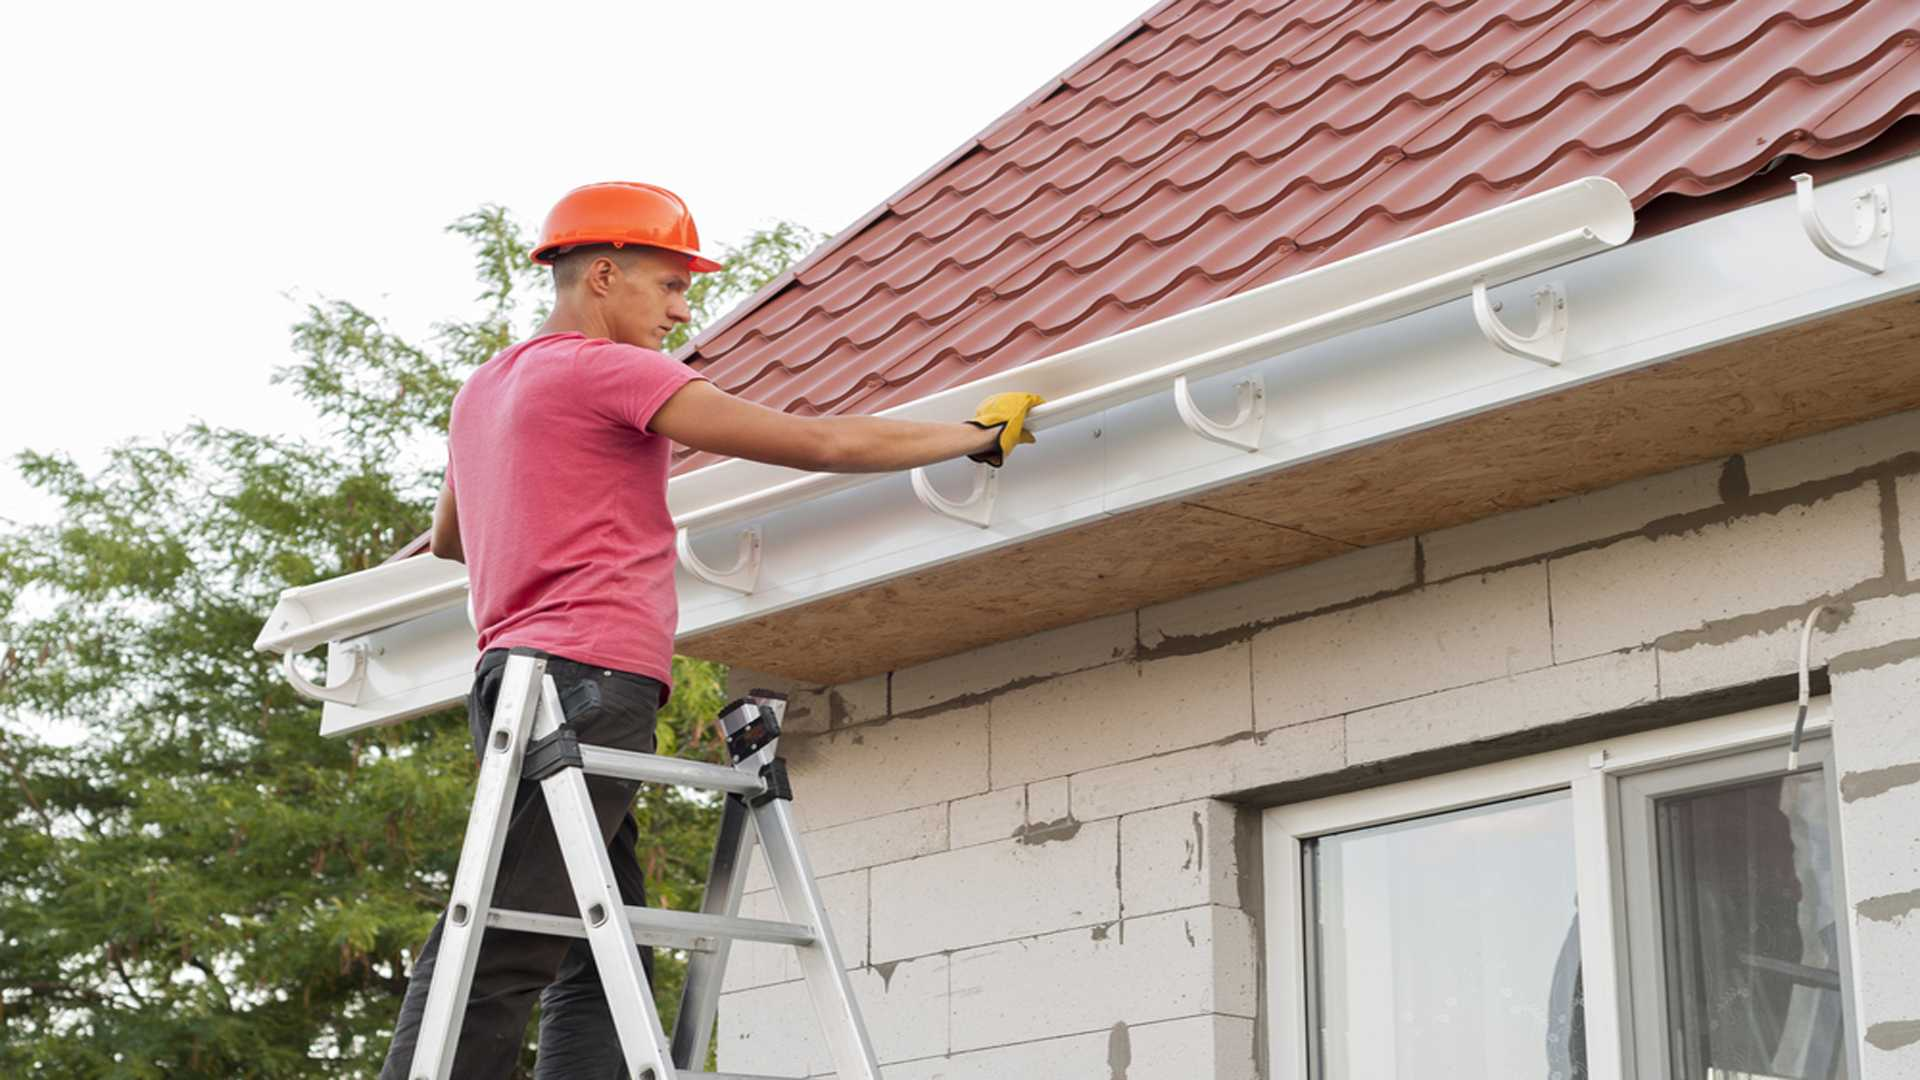 Worker Installing Gutter System On Roof Gutter Installation Gutter Solutions and Home Improvements Pensacola FL 850 776 178